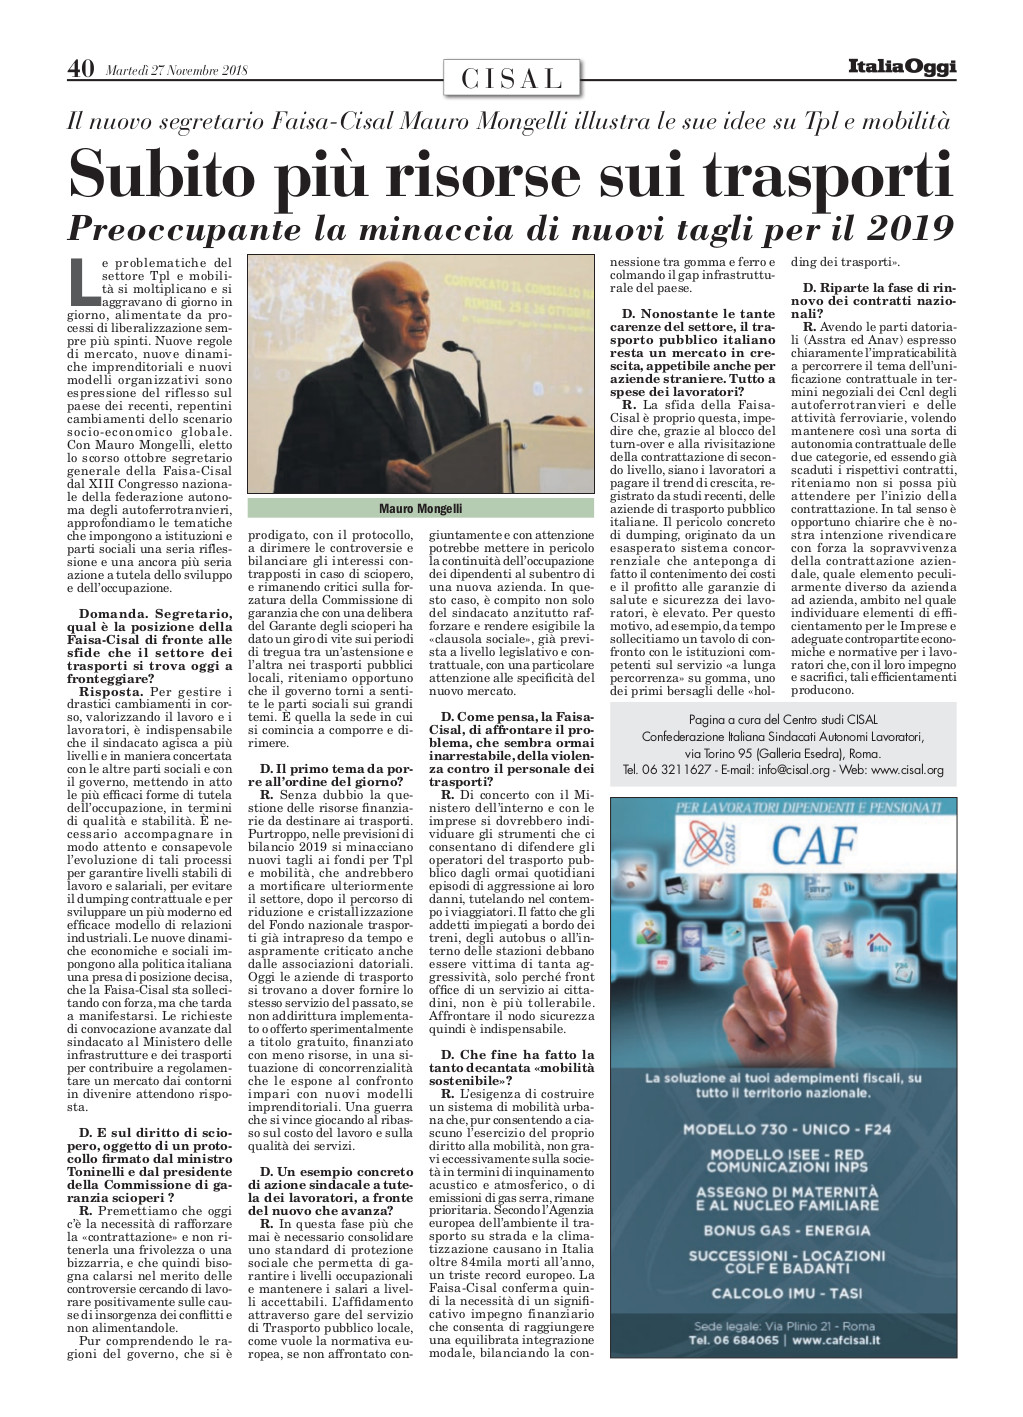 Editoriale in formato PDF:27/11/2018 Italia Oggi